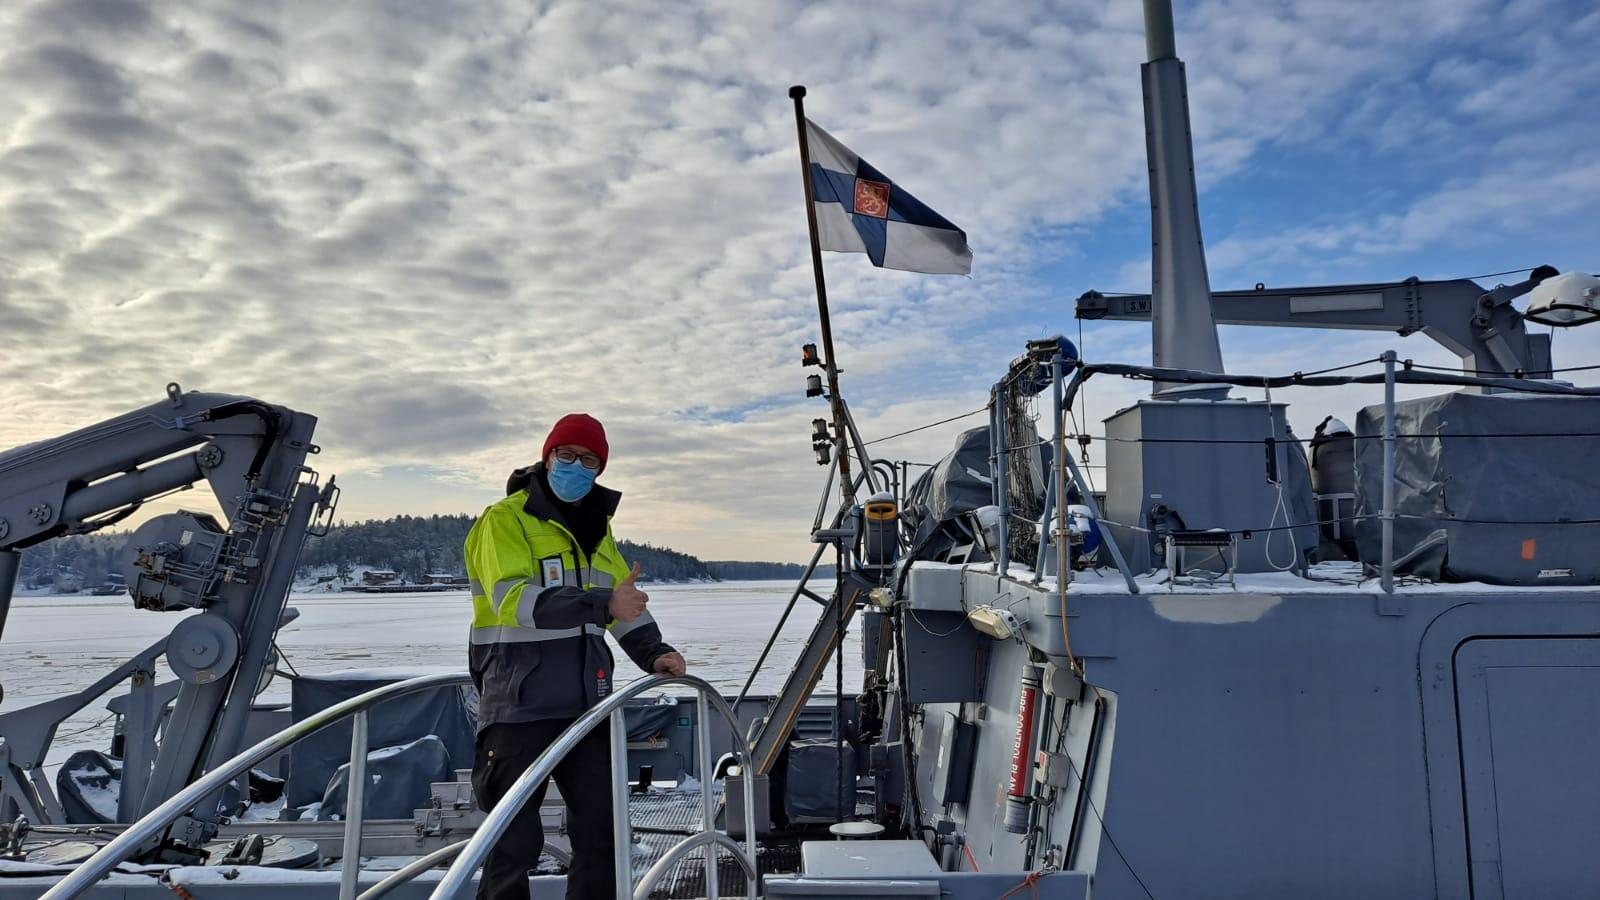 Training Manager and CBRN Specialist, Toni Leikas at Pansio naval base, during a major CBRN training for the Finnish Navy.